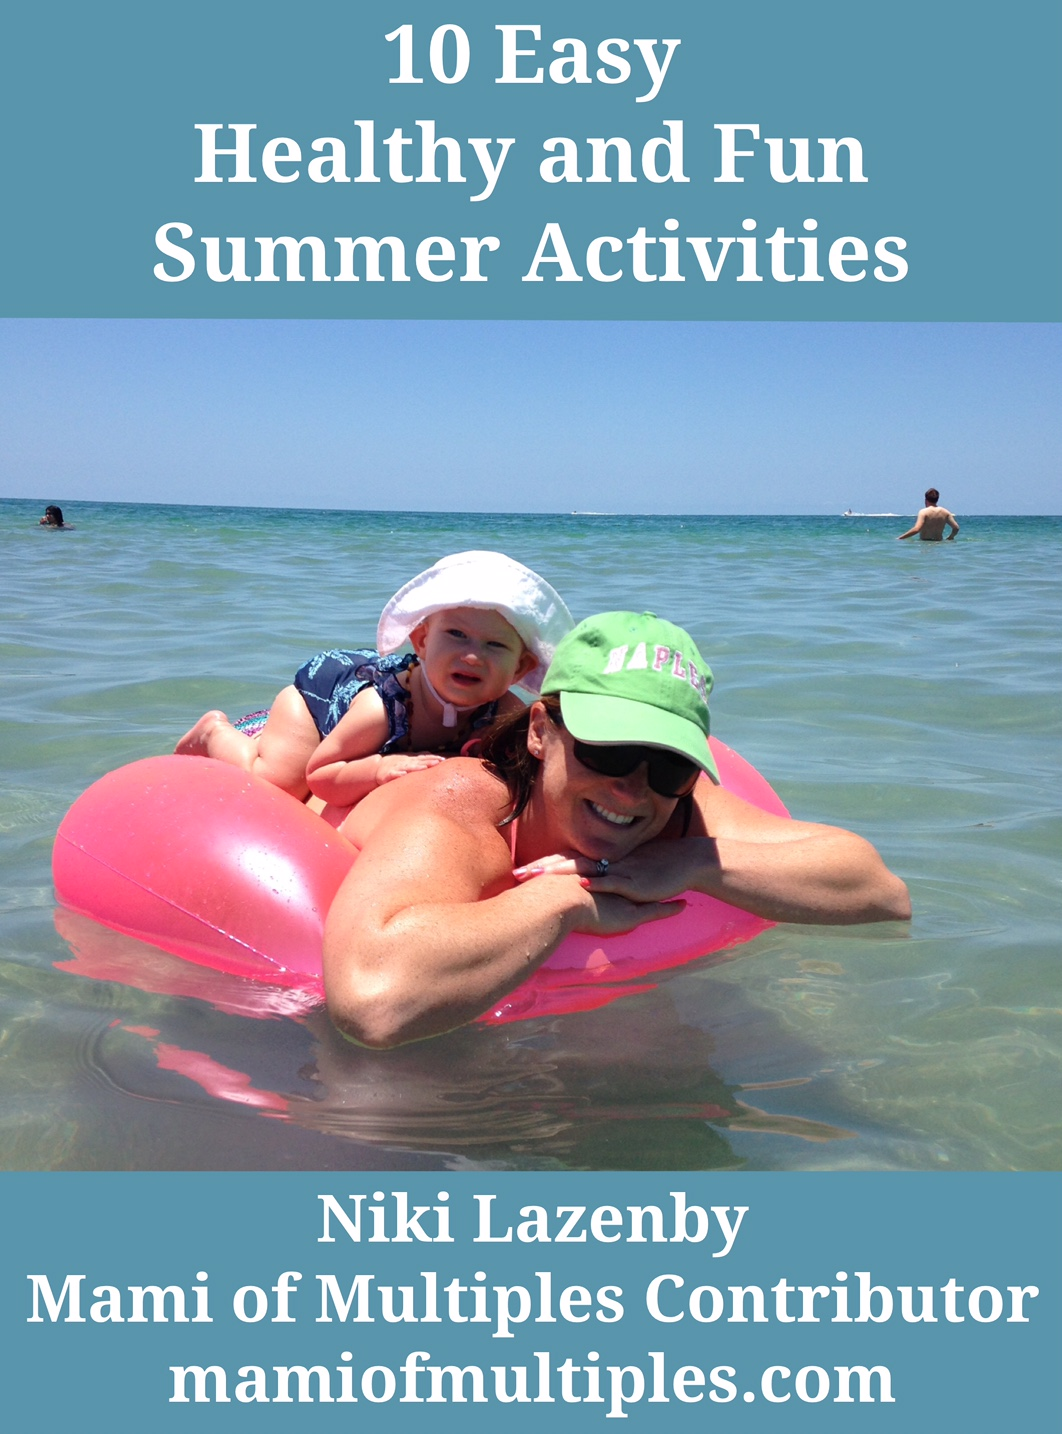 10 Easy Healthy and Fun Summer Activities